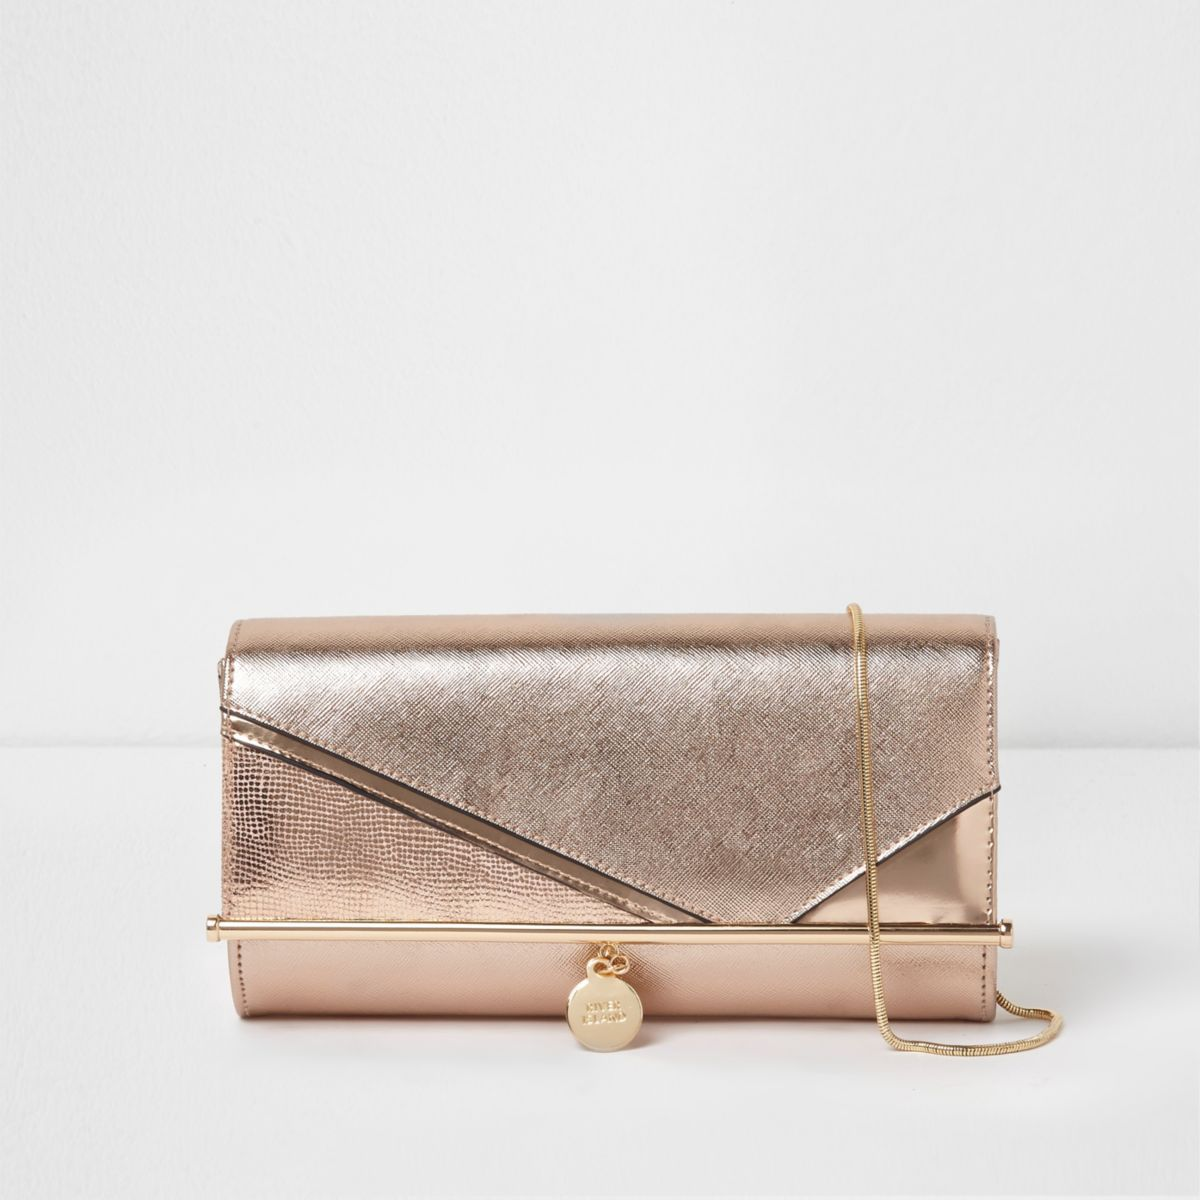 Rose gold bar front foldover clutch bag